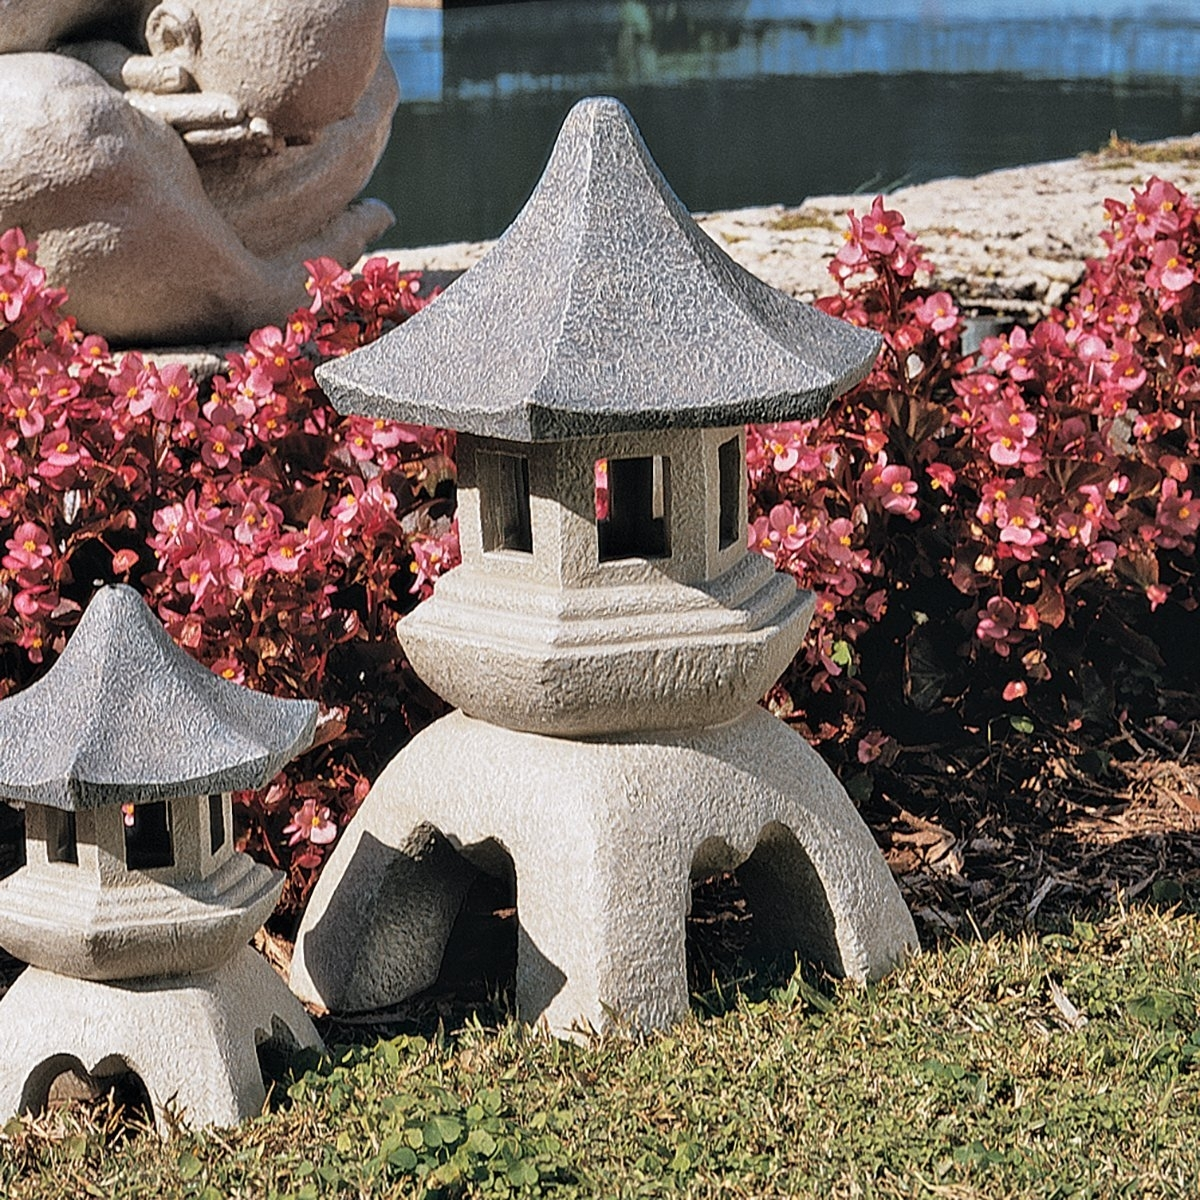 4 Cheap Outdoor Japanese Garden Lanterns For Sale - Homelilys Decor regarding Outdoor Japanese Lanterns for Sale (Image 1 of 20)